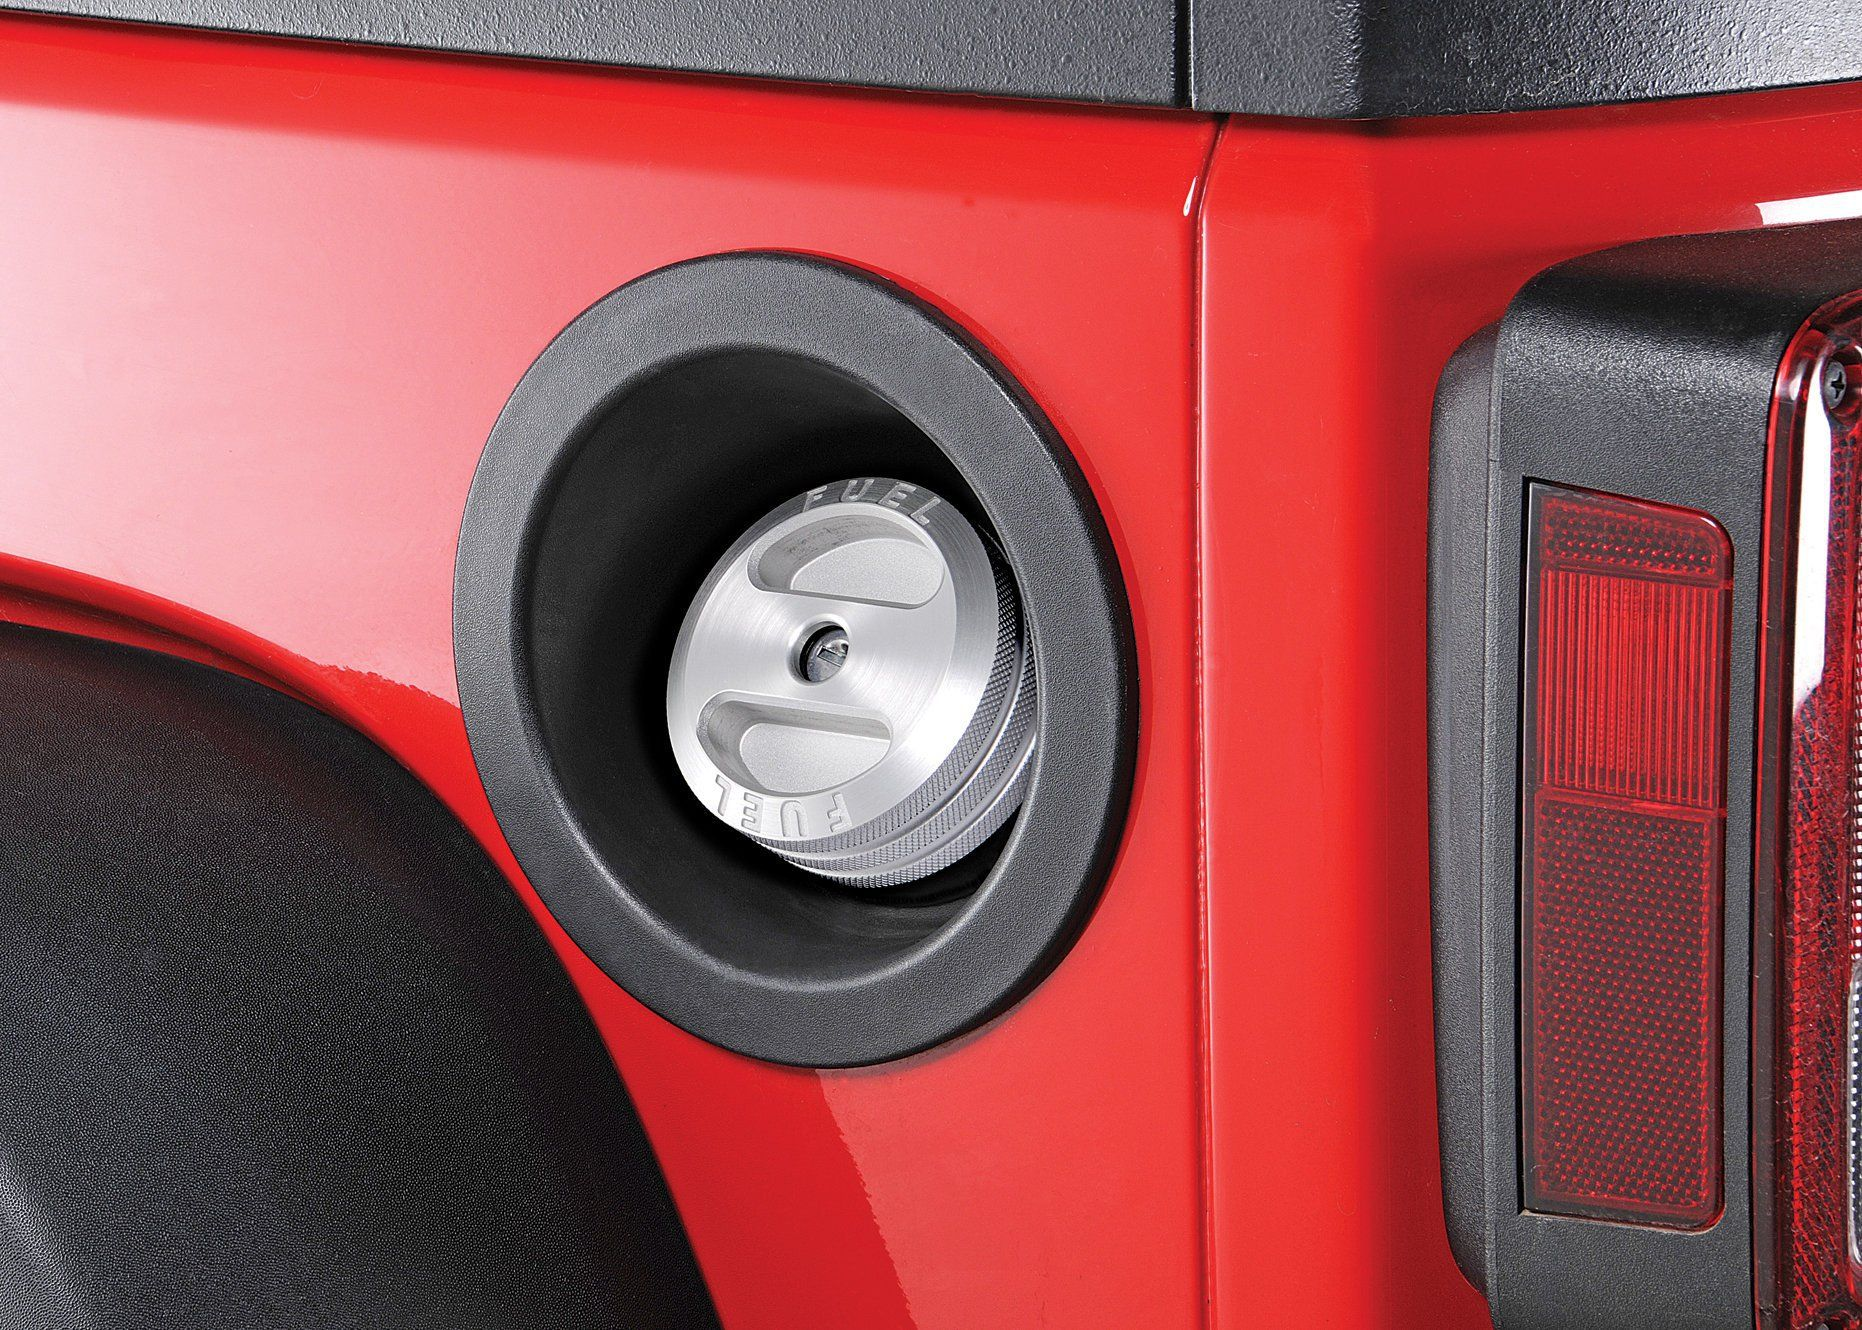 Best Jeep Wrangler Gas Cap With Images Best Jeep Wrangler Jeep Wrangler Accessories Jeep Wrangler Tj